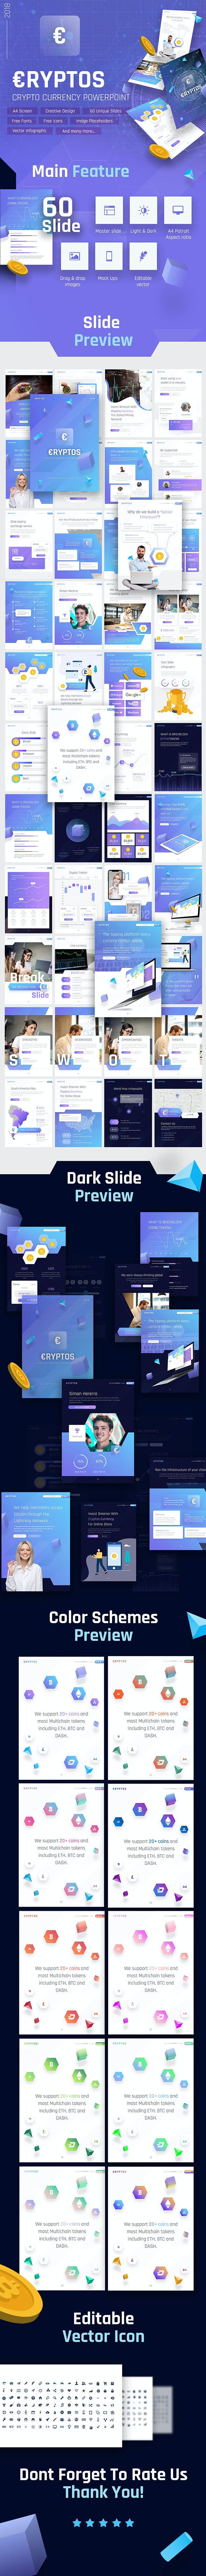 Cryptos - Portrait Crypto Currency PowerPoint Template - PowerPoint Templates Presentation Templates